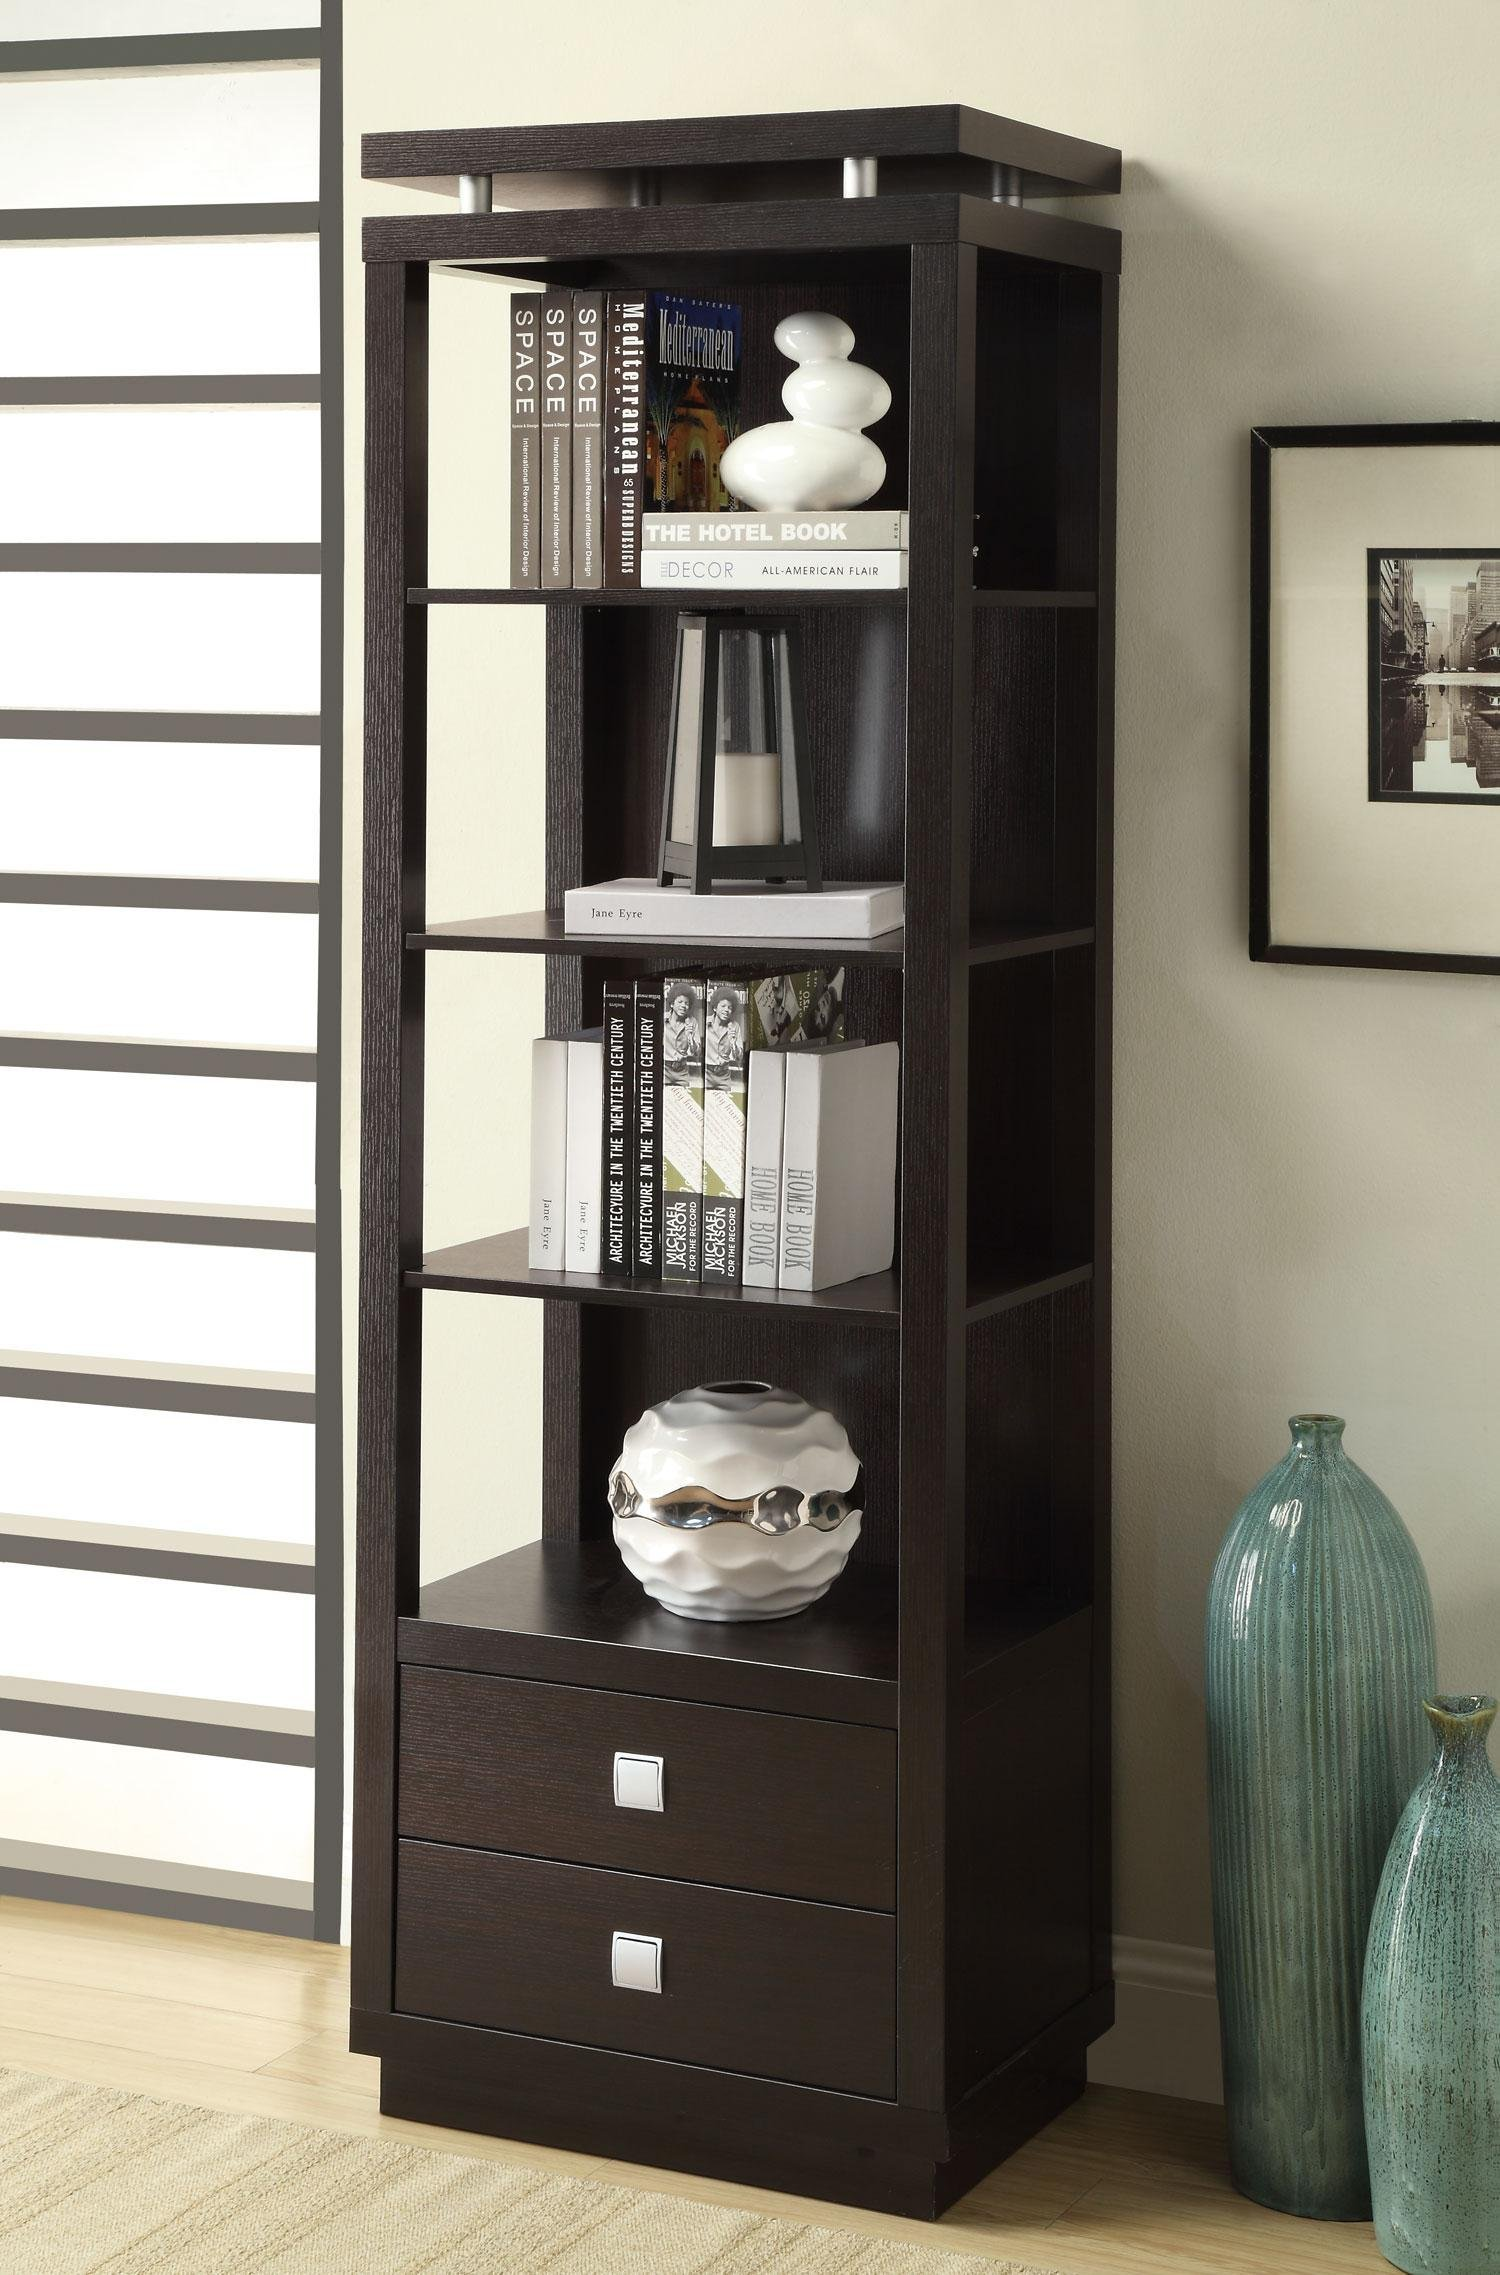 Coaster 800354-CO Entertainment Units Collection 74'''' Tall Media Tower with 2 Drawers 4 Shelves Square Metal Hardware and Wood Construction, Cappuccino Finish by Coaster Home Furnishings